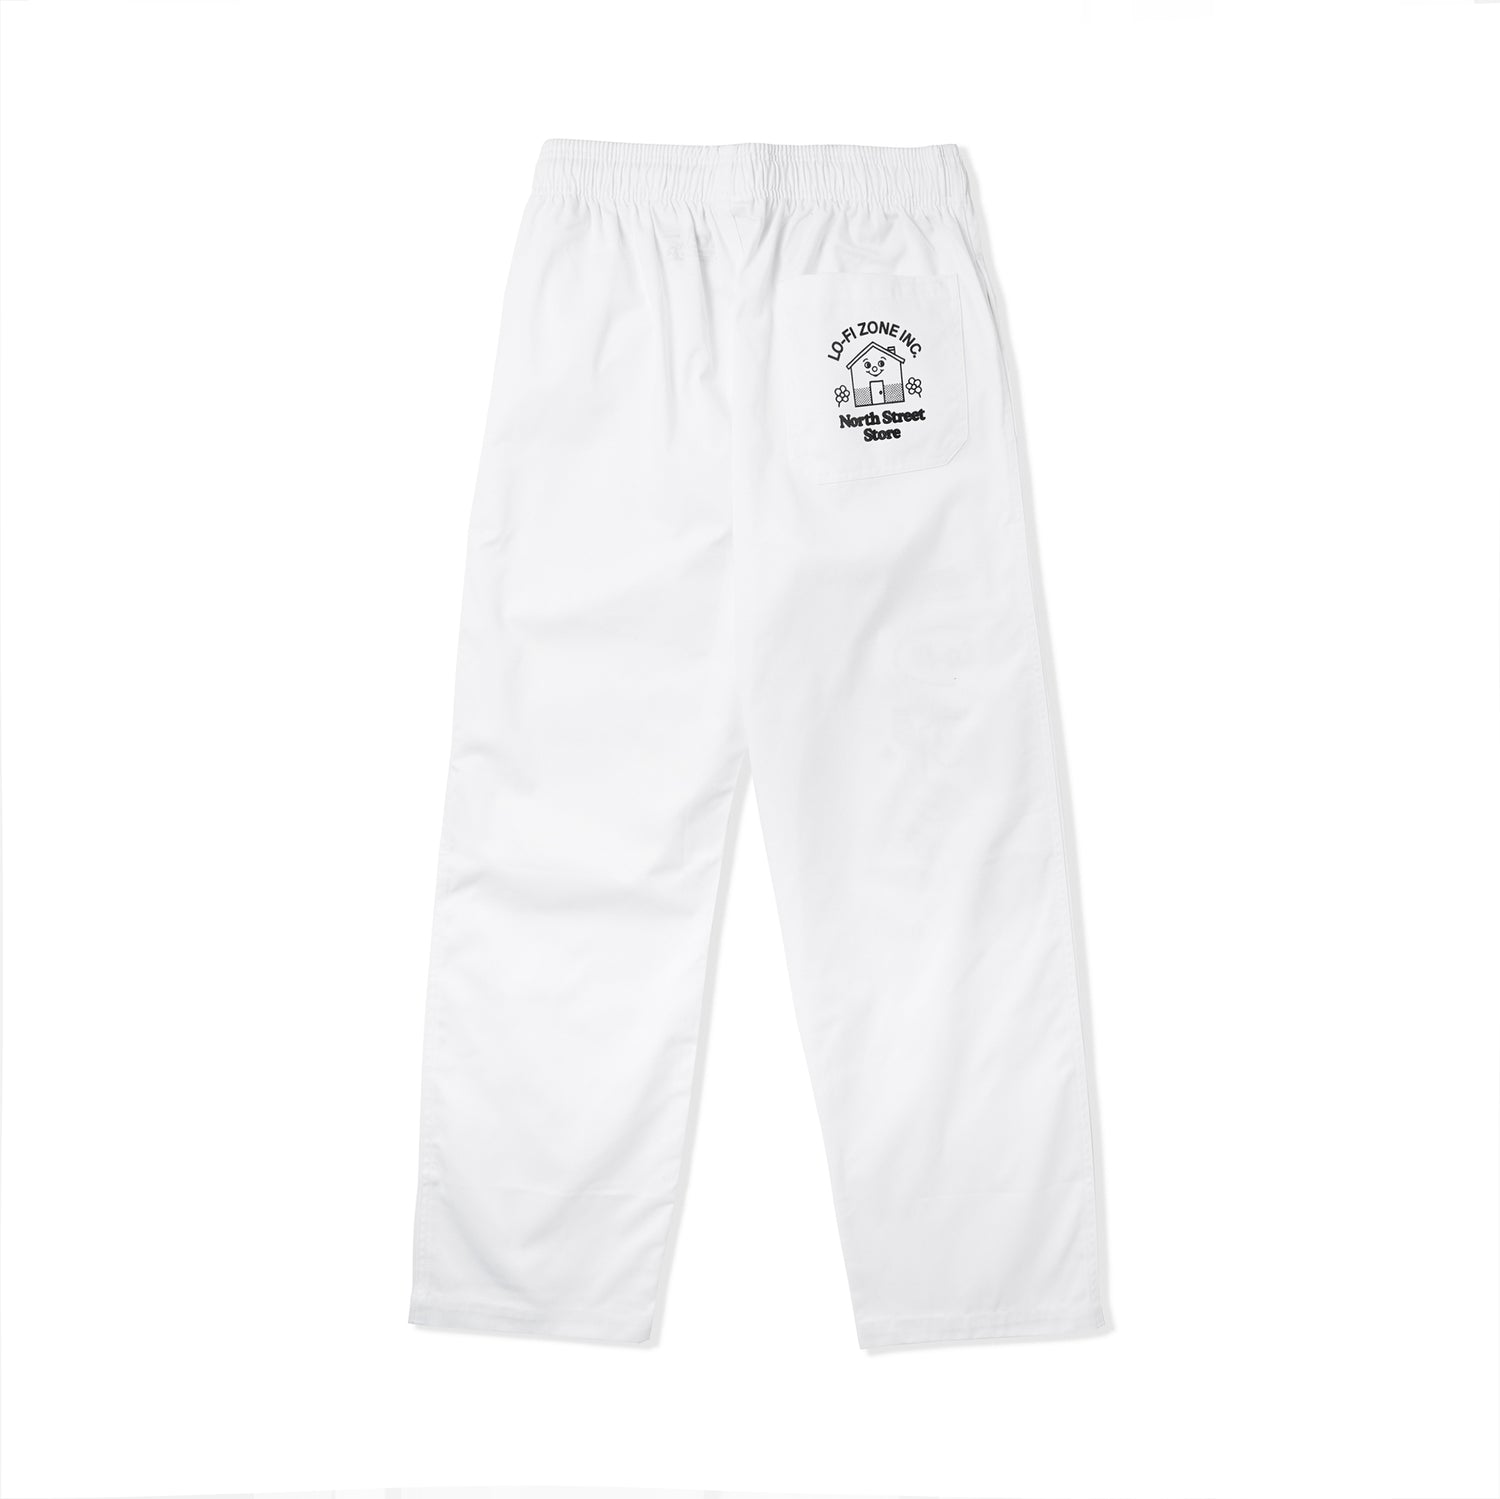 Lo-Fi / North Street Store Chef Pants, White